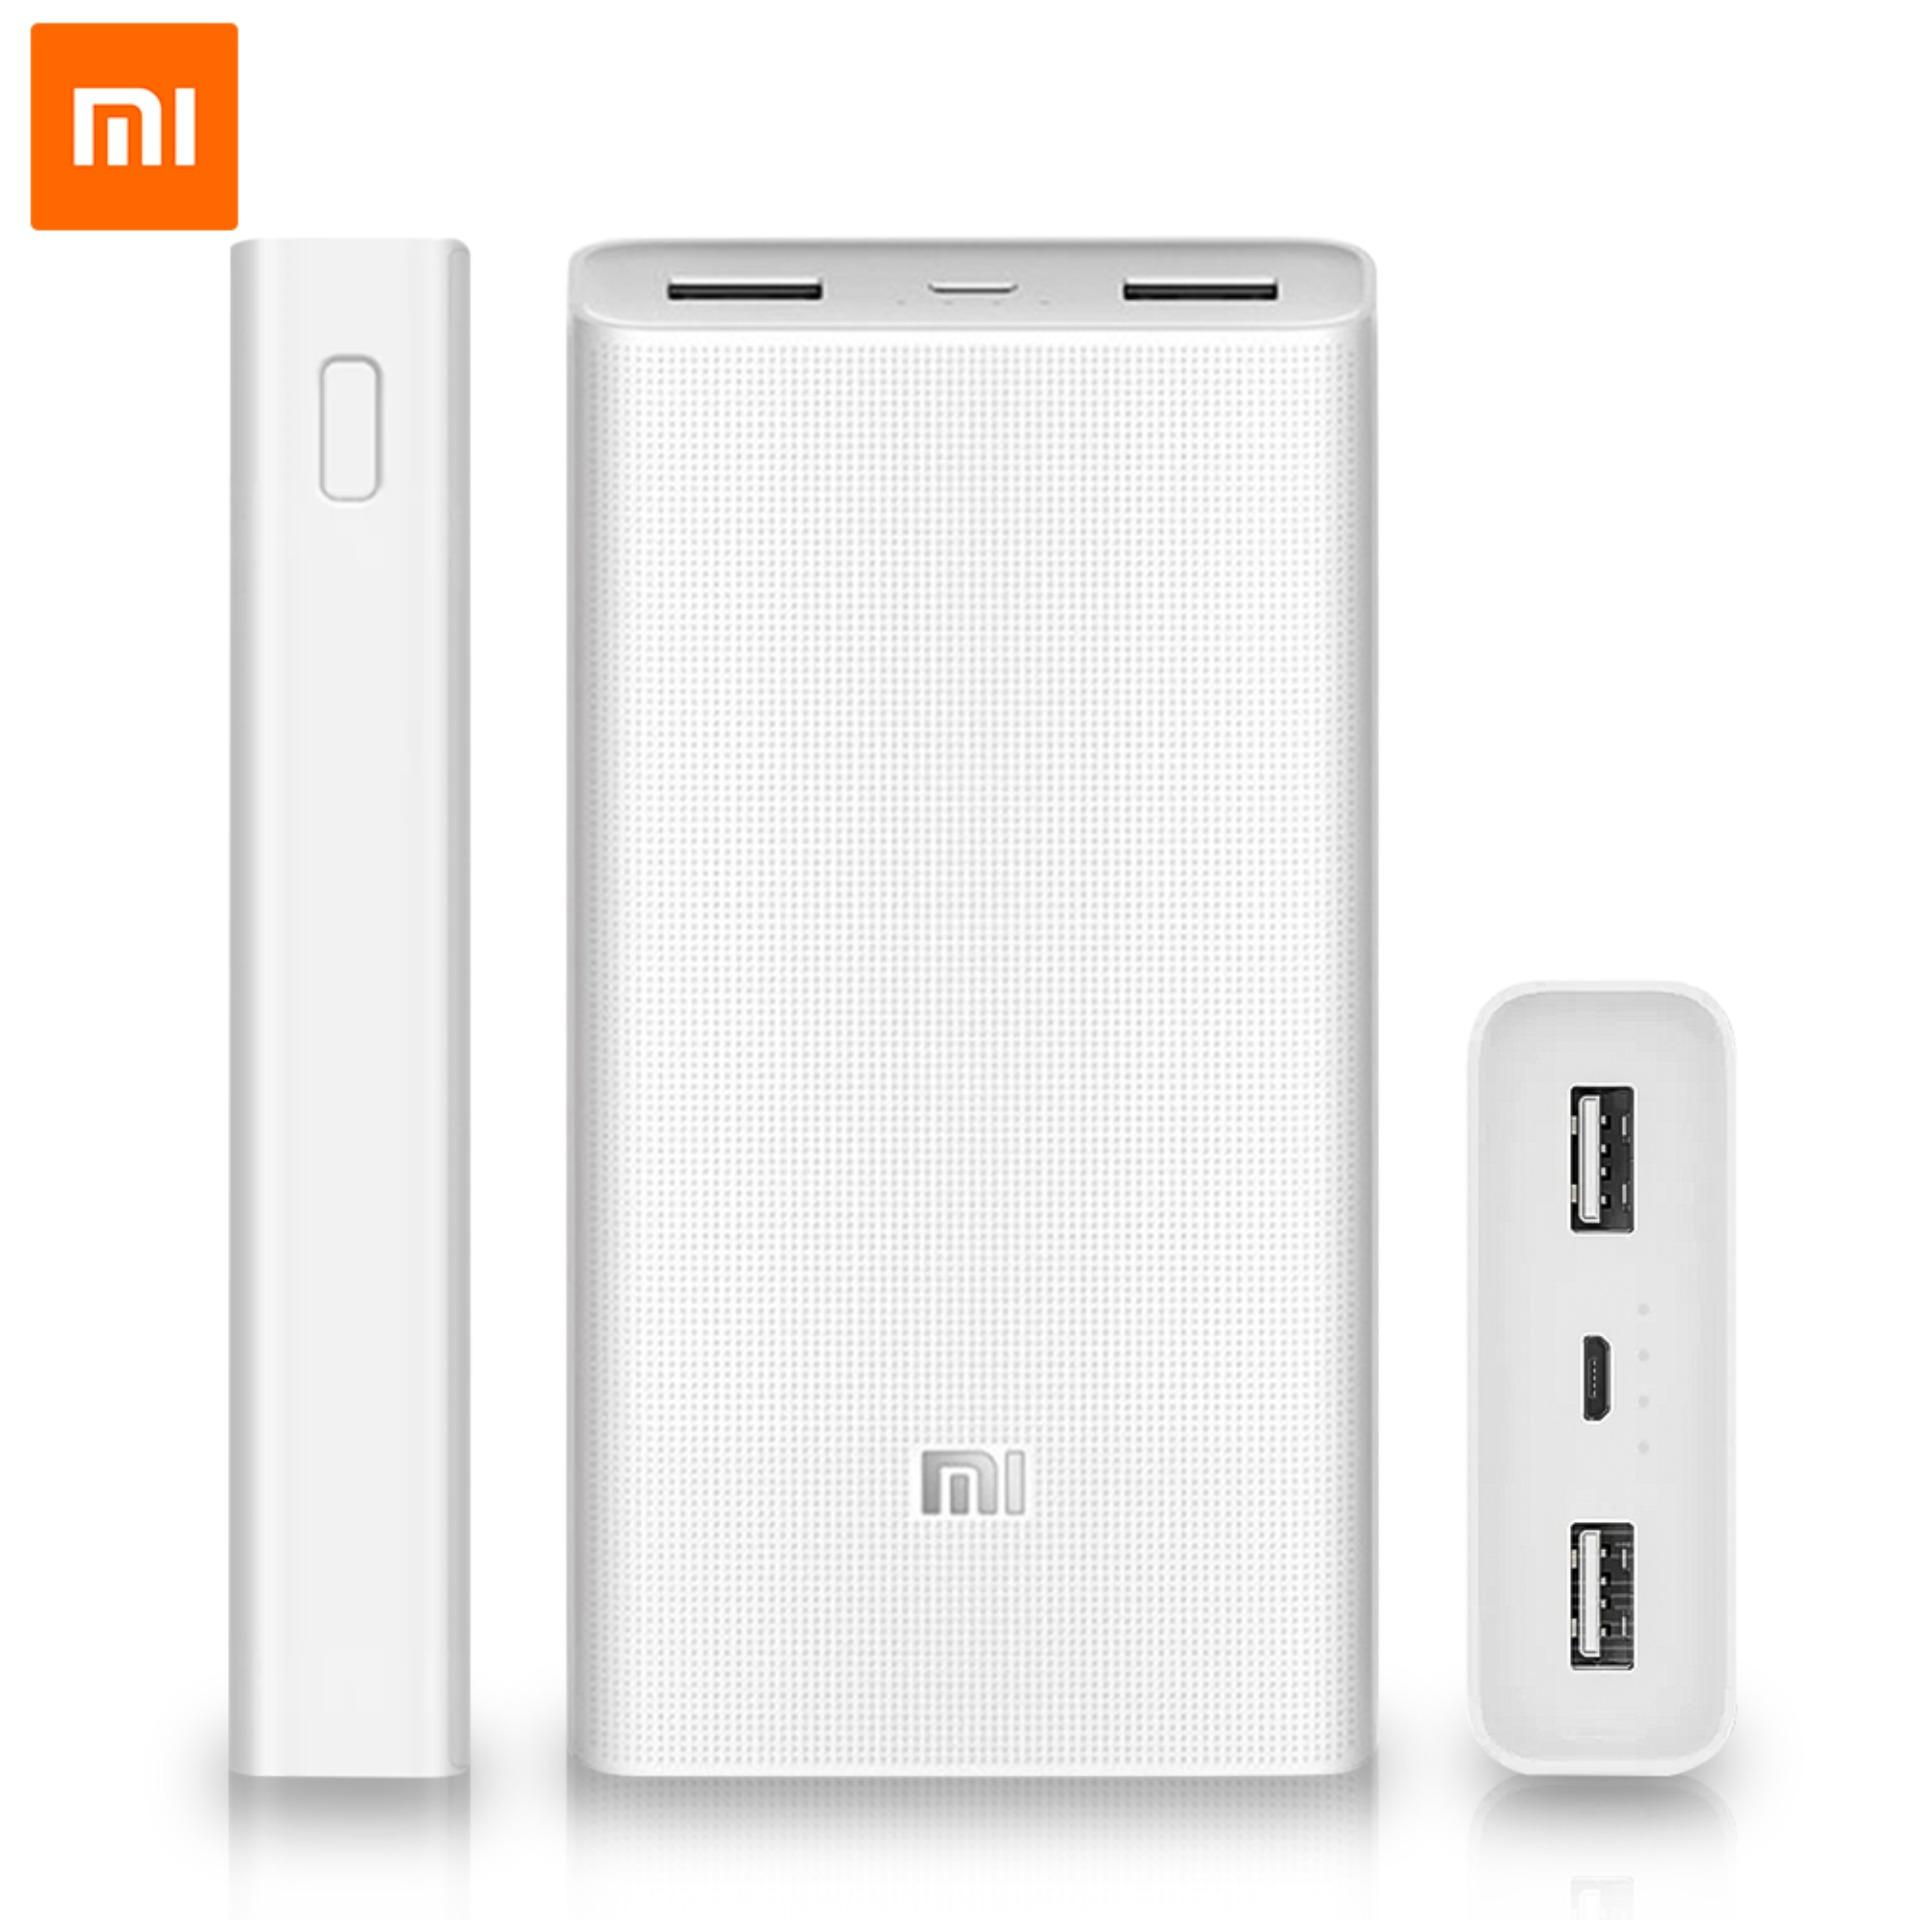 Xiaomi Philippines Power Bank For Sale Prices Reviews Powerbank Slim 10000 Mah Original 2c 20000mah Modelplm06zm White